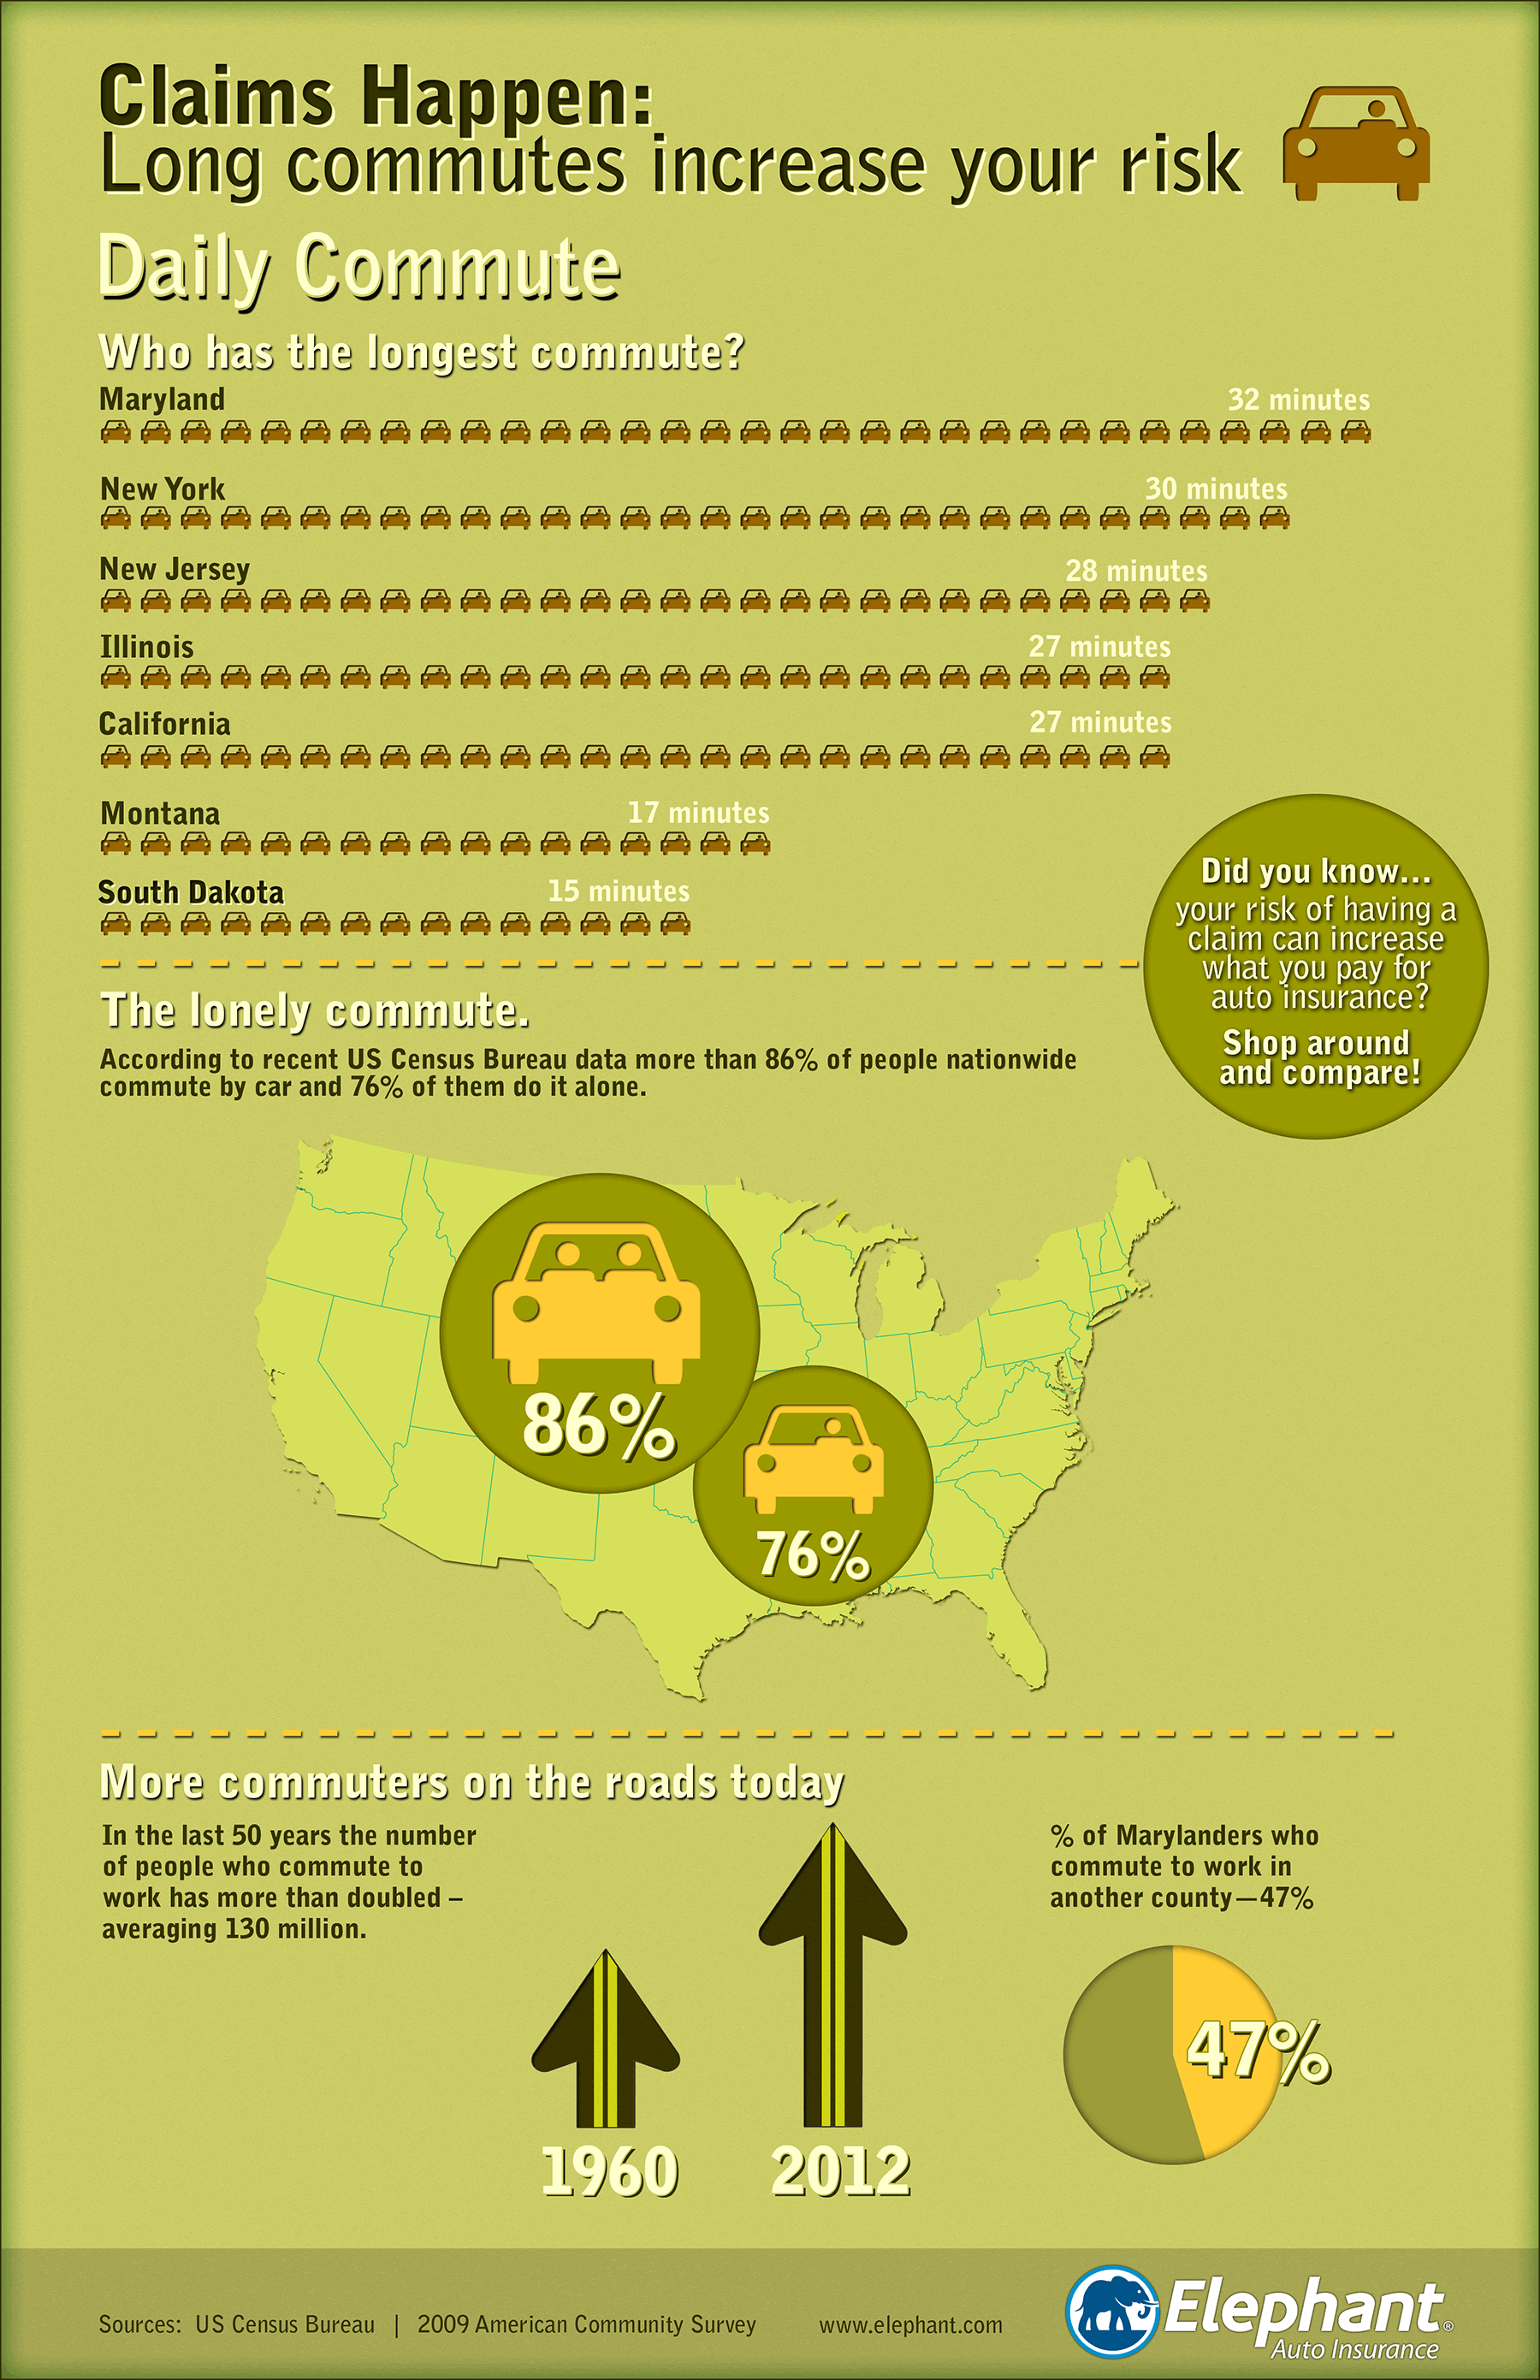 Relation of commute intensity with the car insurance